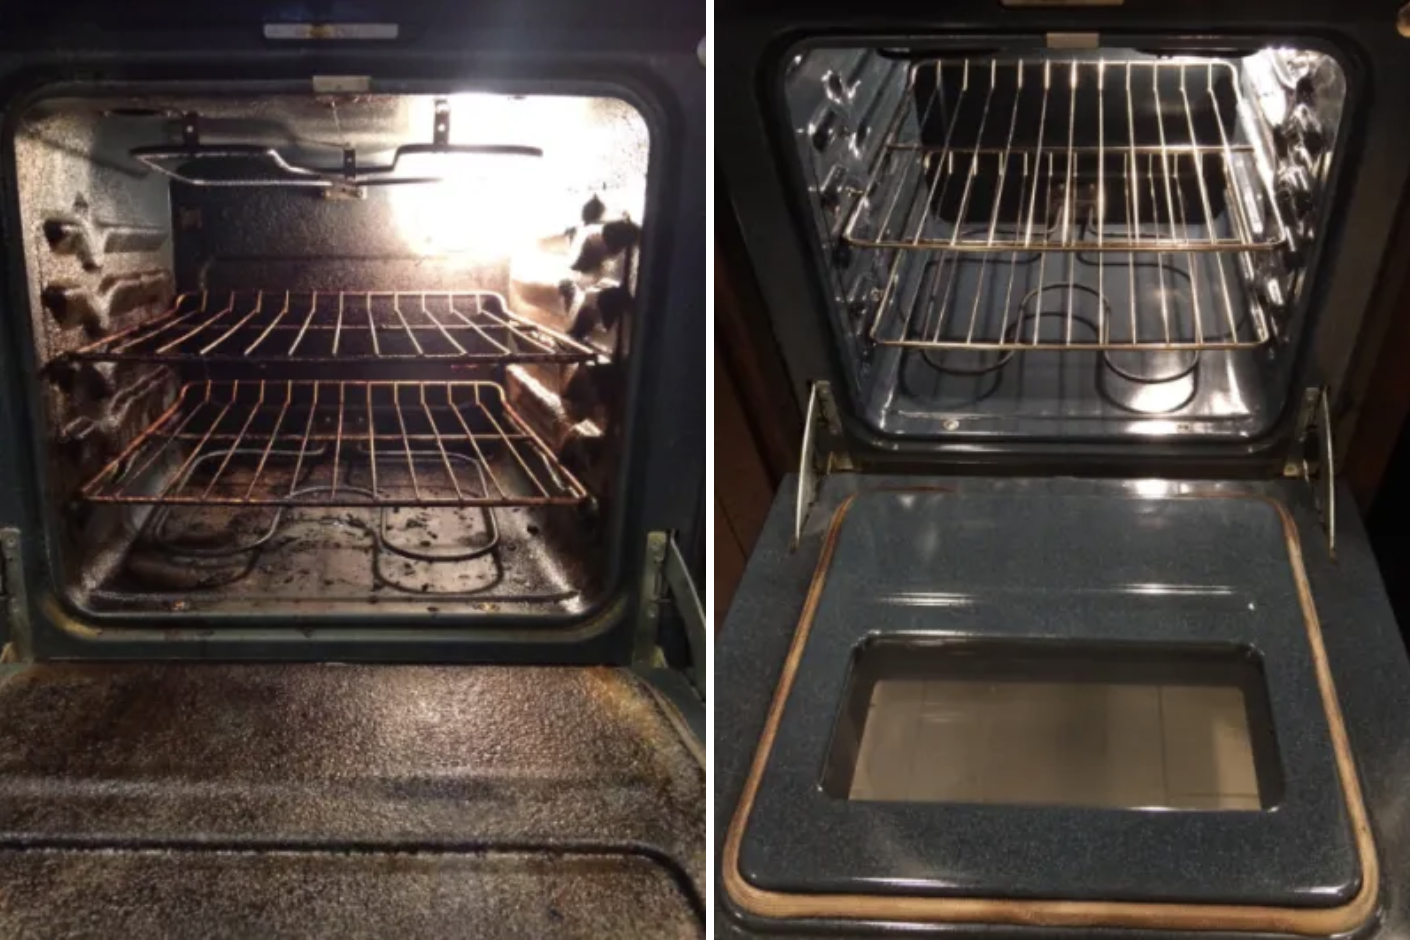 Reviewer before and after pic of a really dirty oven and then a super spotless one after using the cleaner